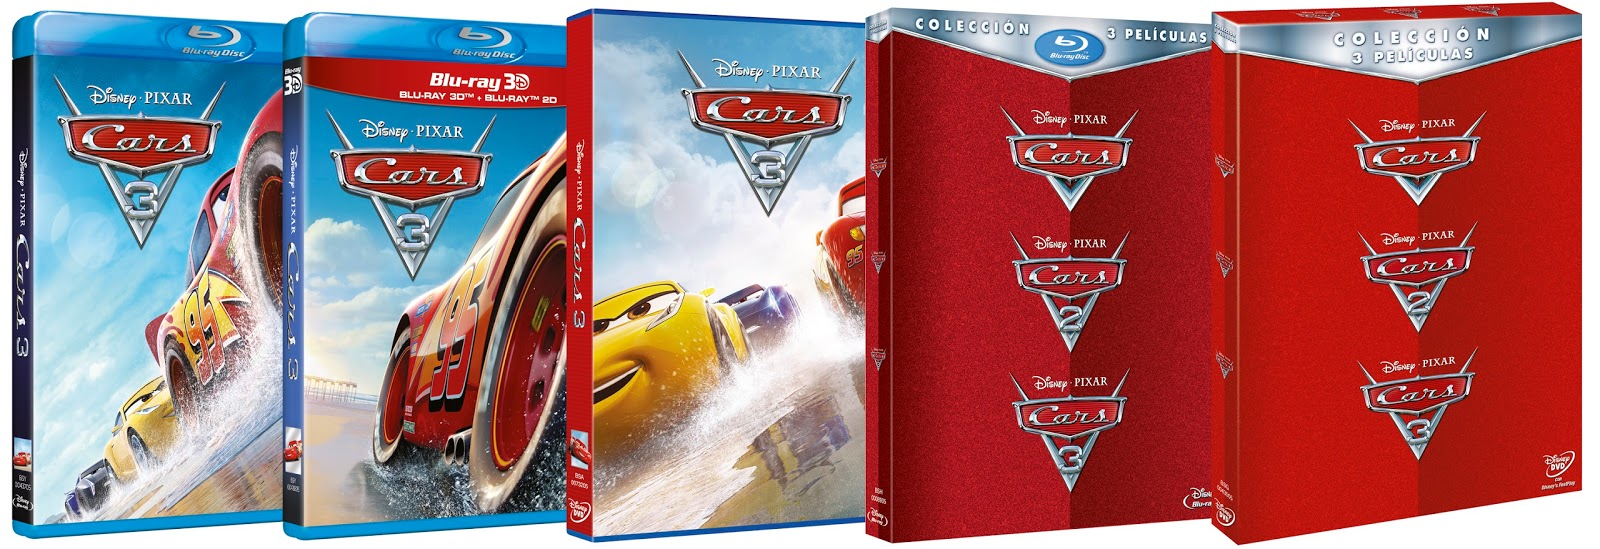 los del s tano cars 3 en dvd blu ray y plataformas digitales. Black Bedroom Furniture Sets. Home Design Ideas